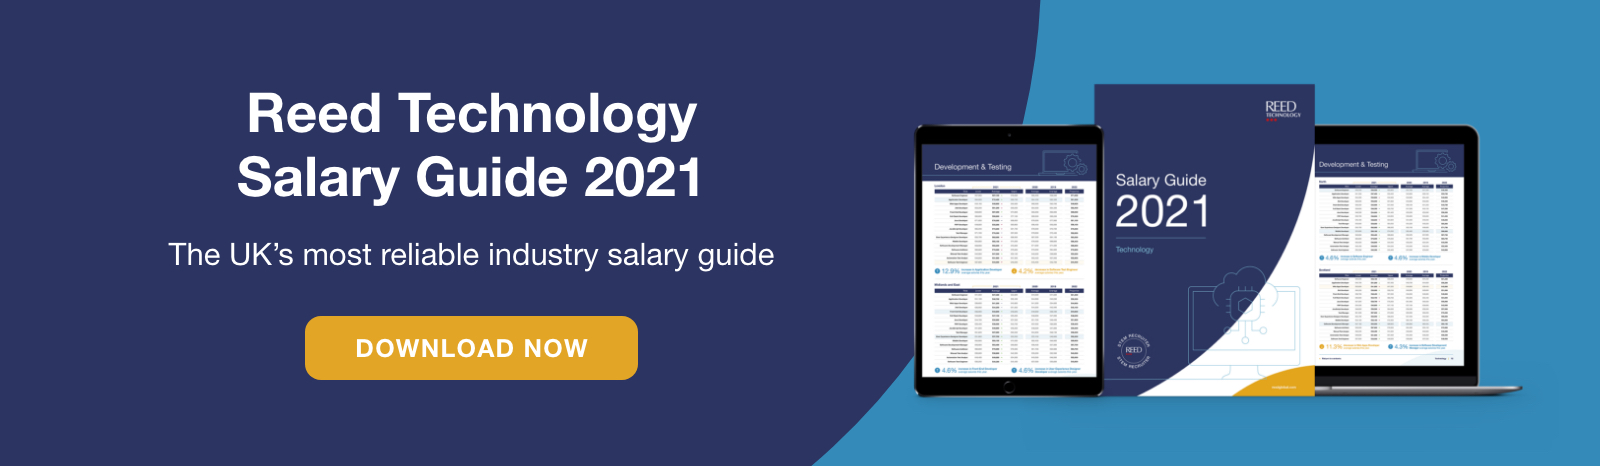 The Reed Technology 2021 Salary Guide features the IT salary data you need to understand the market rate and know your worth